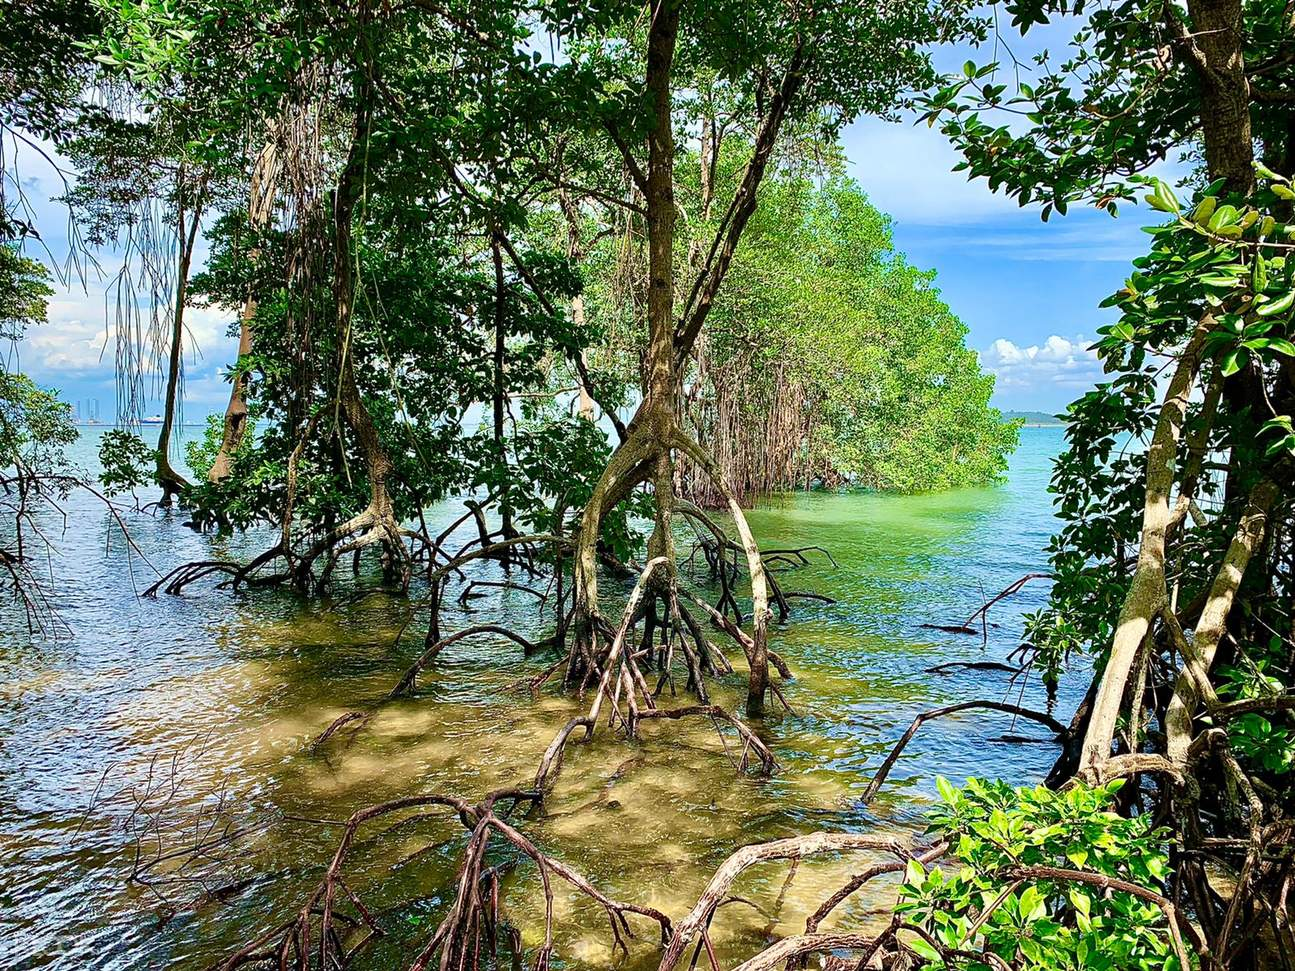 Learn about Chek Jawa's six ecosystems and the diverse array of wildlife that inhabit these unique habitats